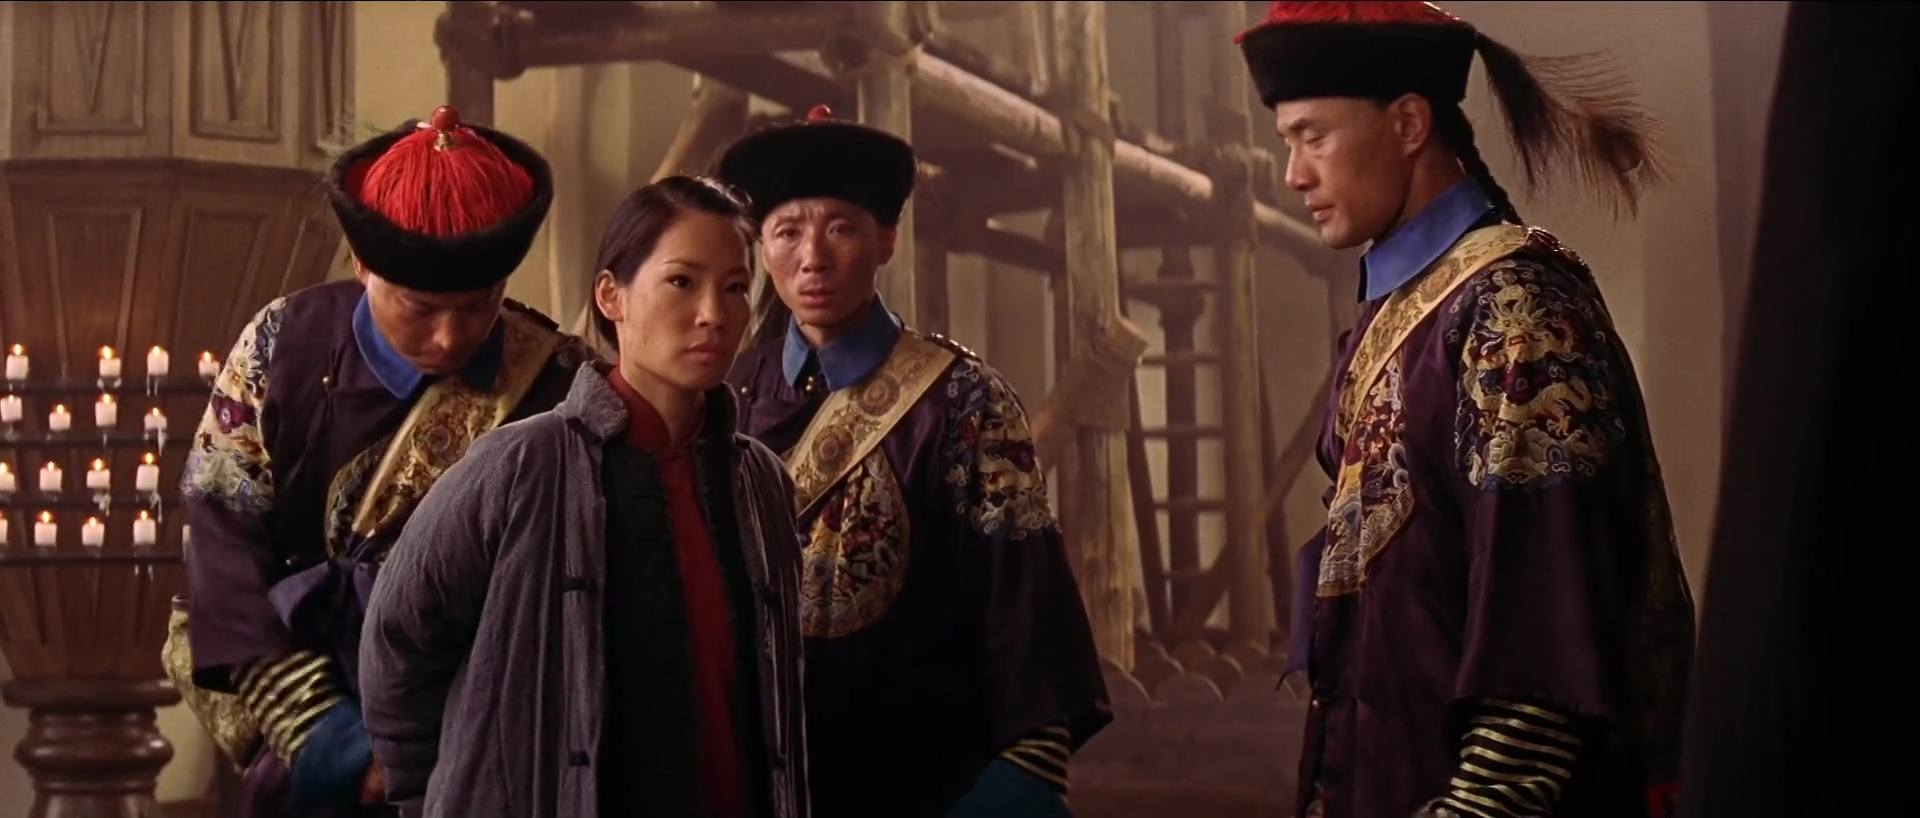 Image shanghai kid noon disney touchstone